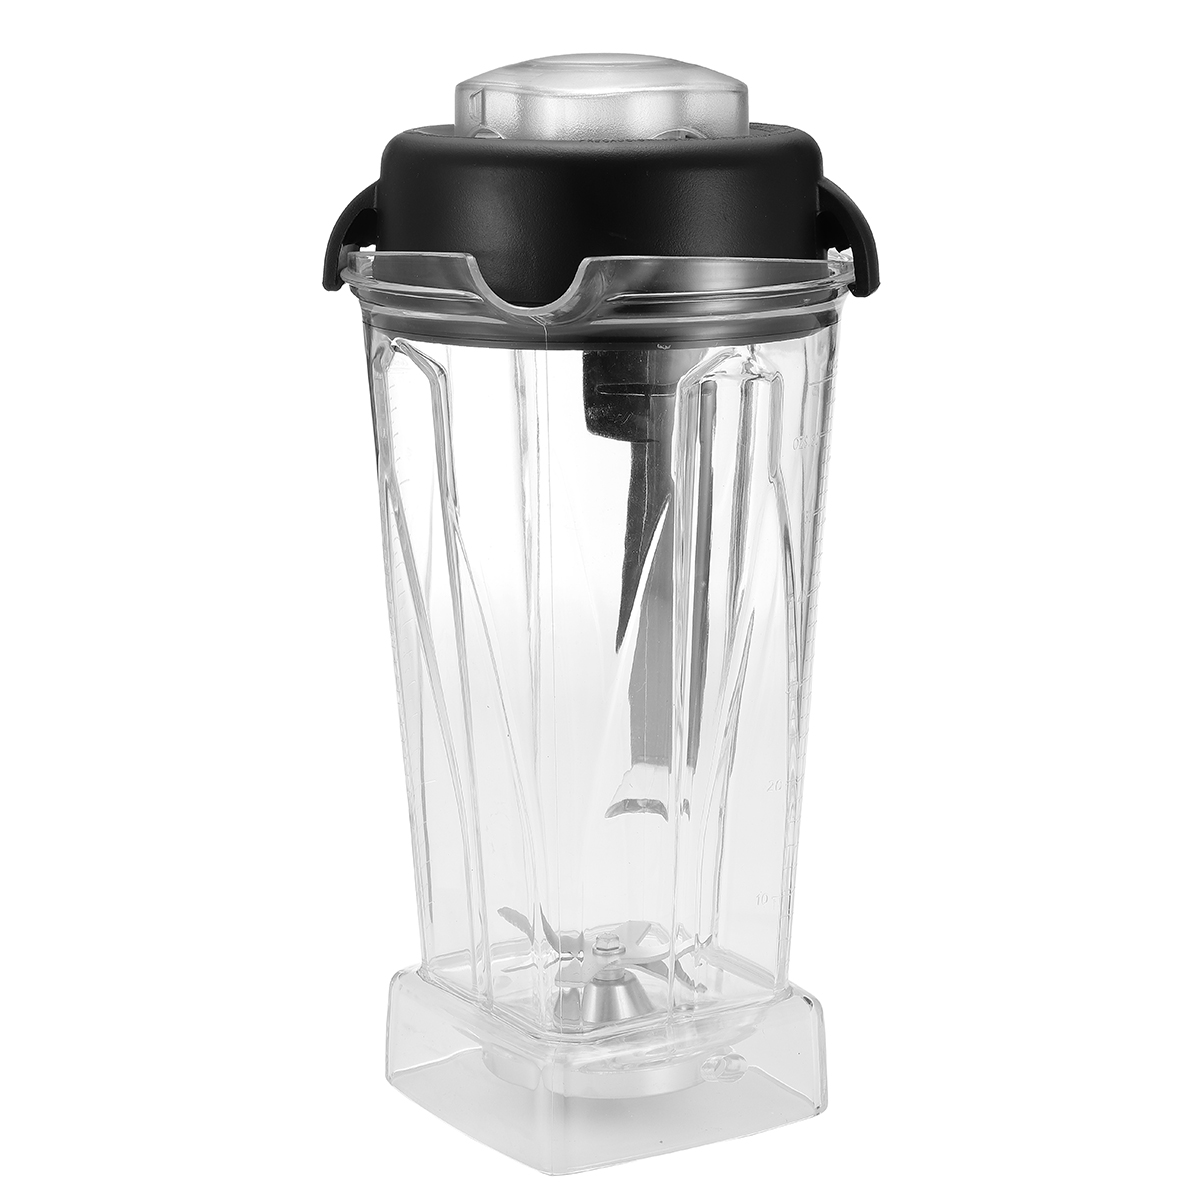 2L Square Container Jar Jug Pitcher Cup bottom with serrated smoothies blades lid BPA FREE for Vitamix spare parts image